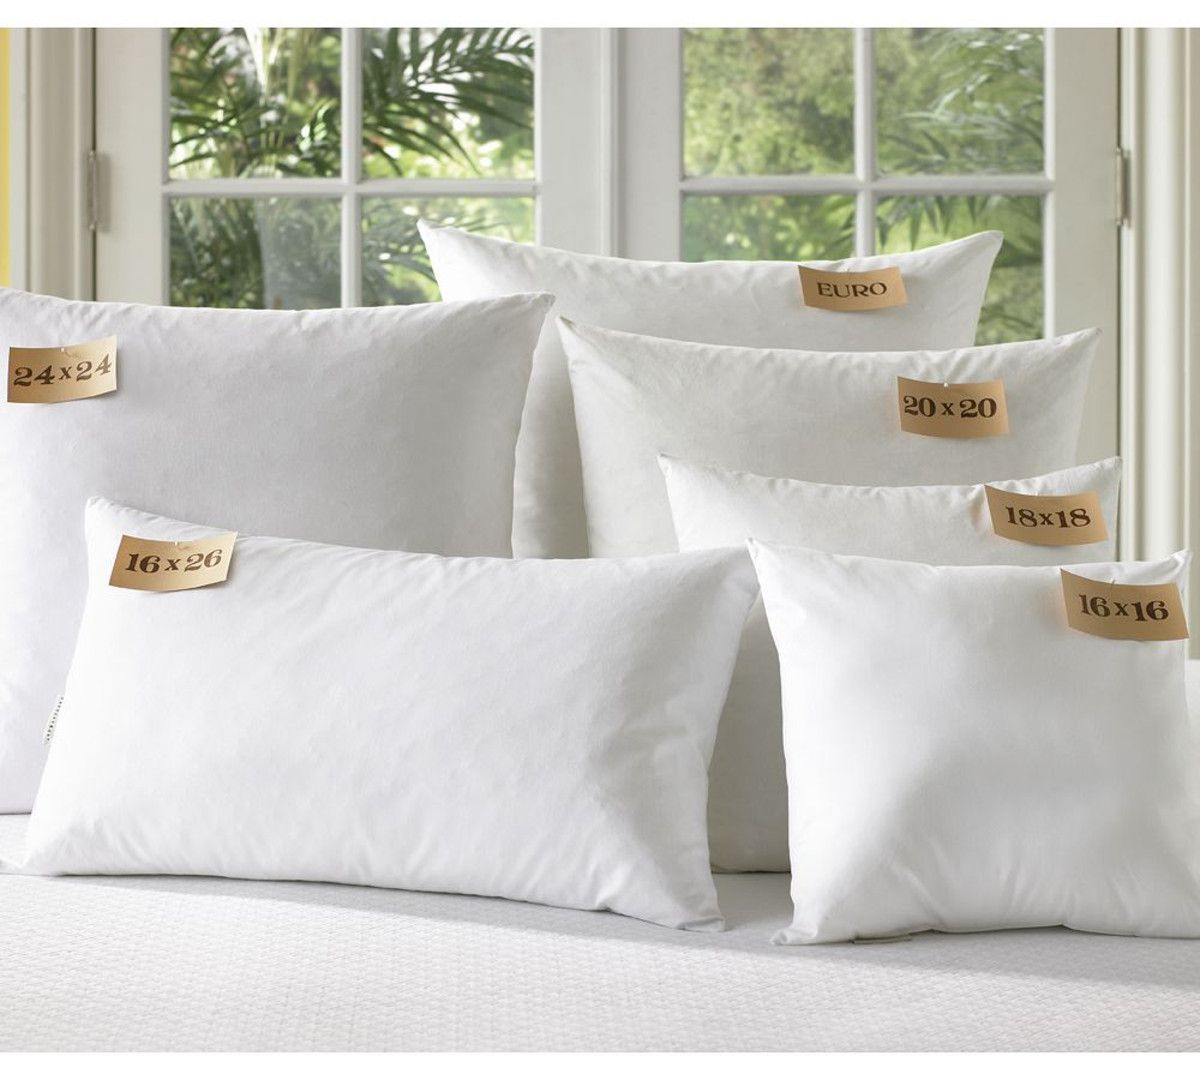 Pottery Barn Pillow Inserts Classy Featherdown Blend Pillow & Cushion Inserts  Pottery Barn Au Decorating Design